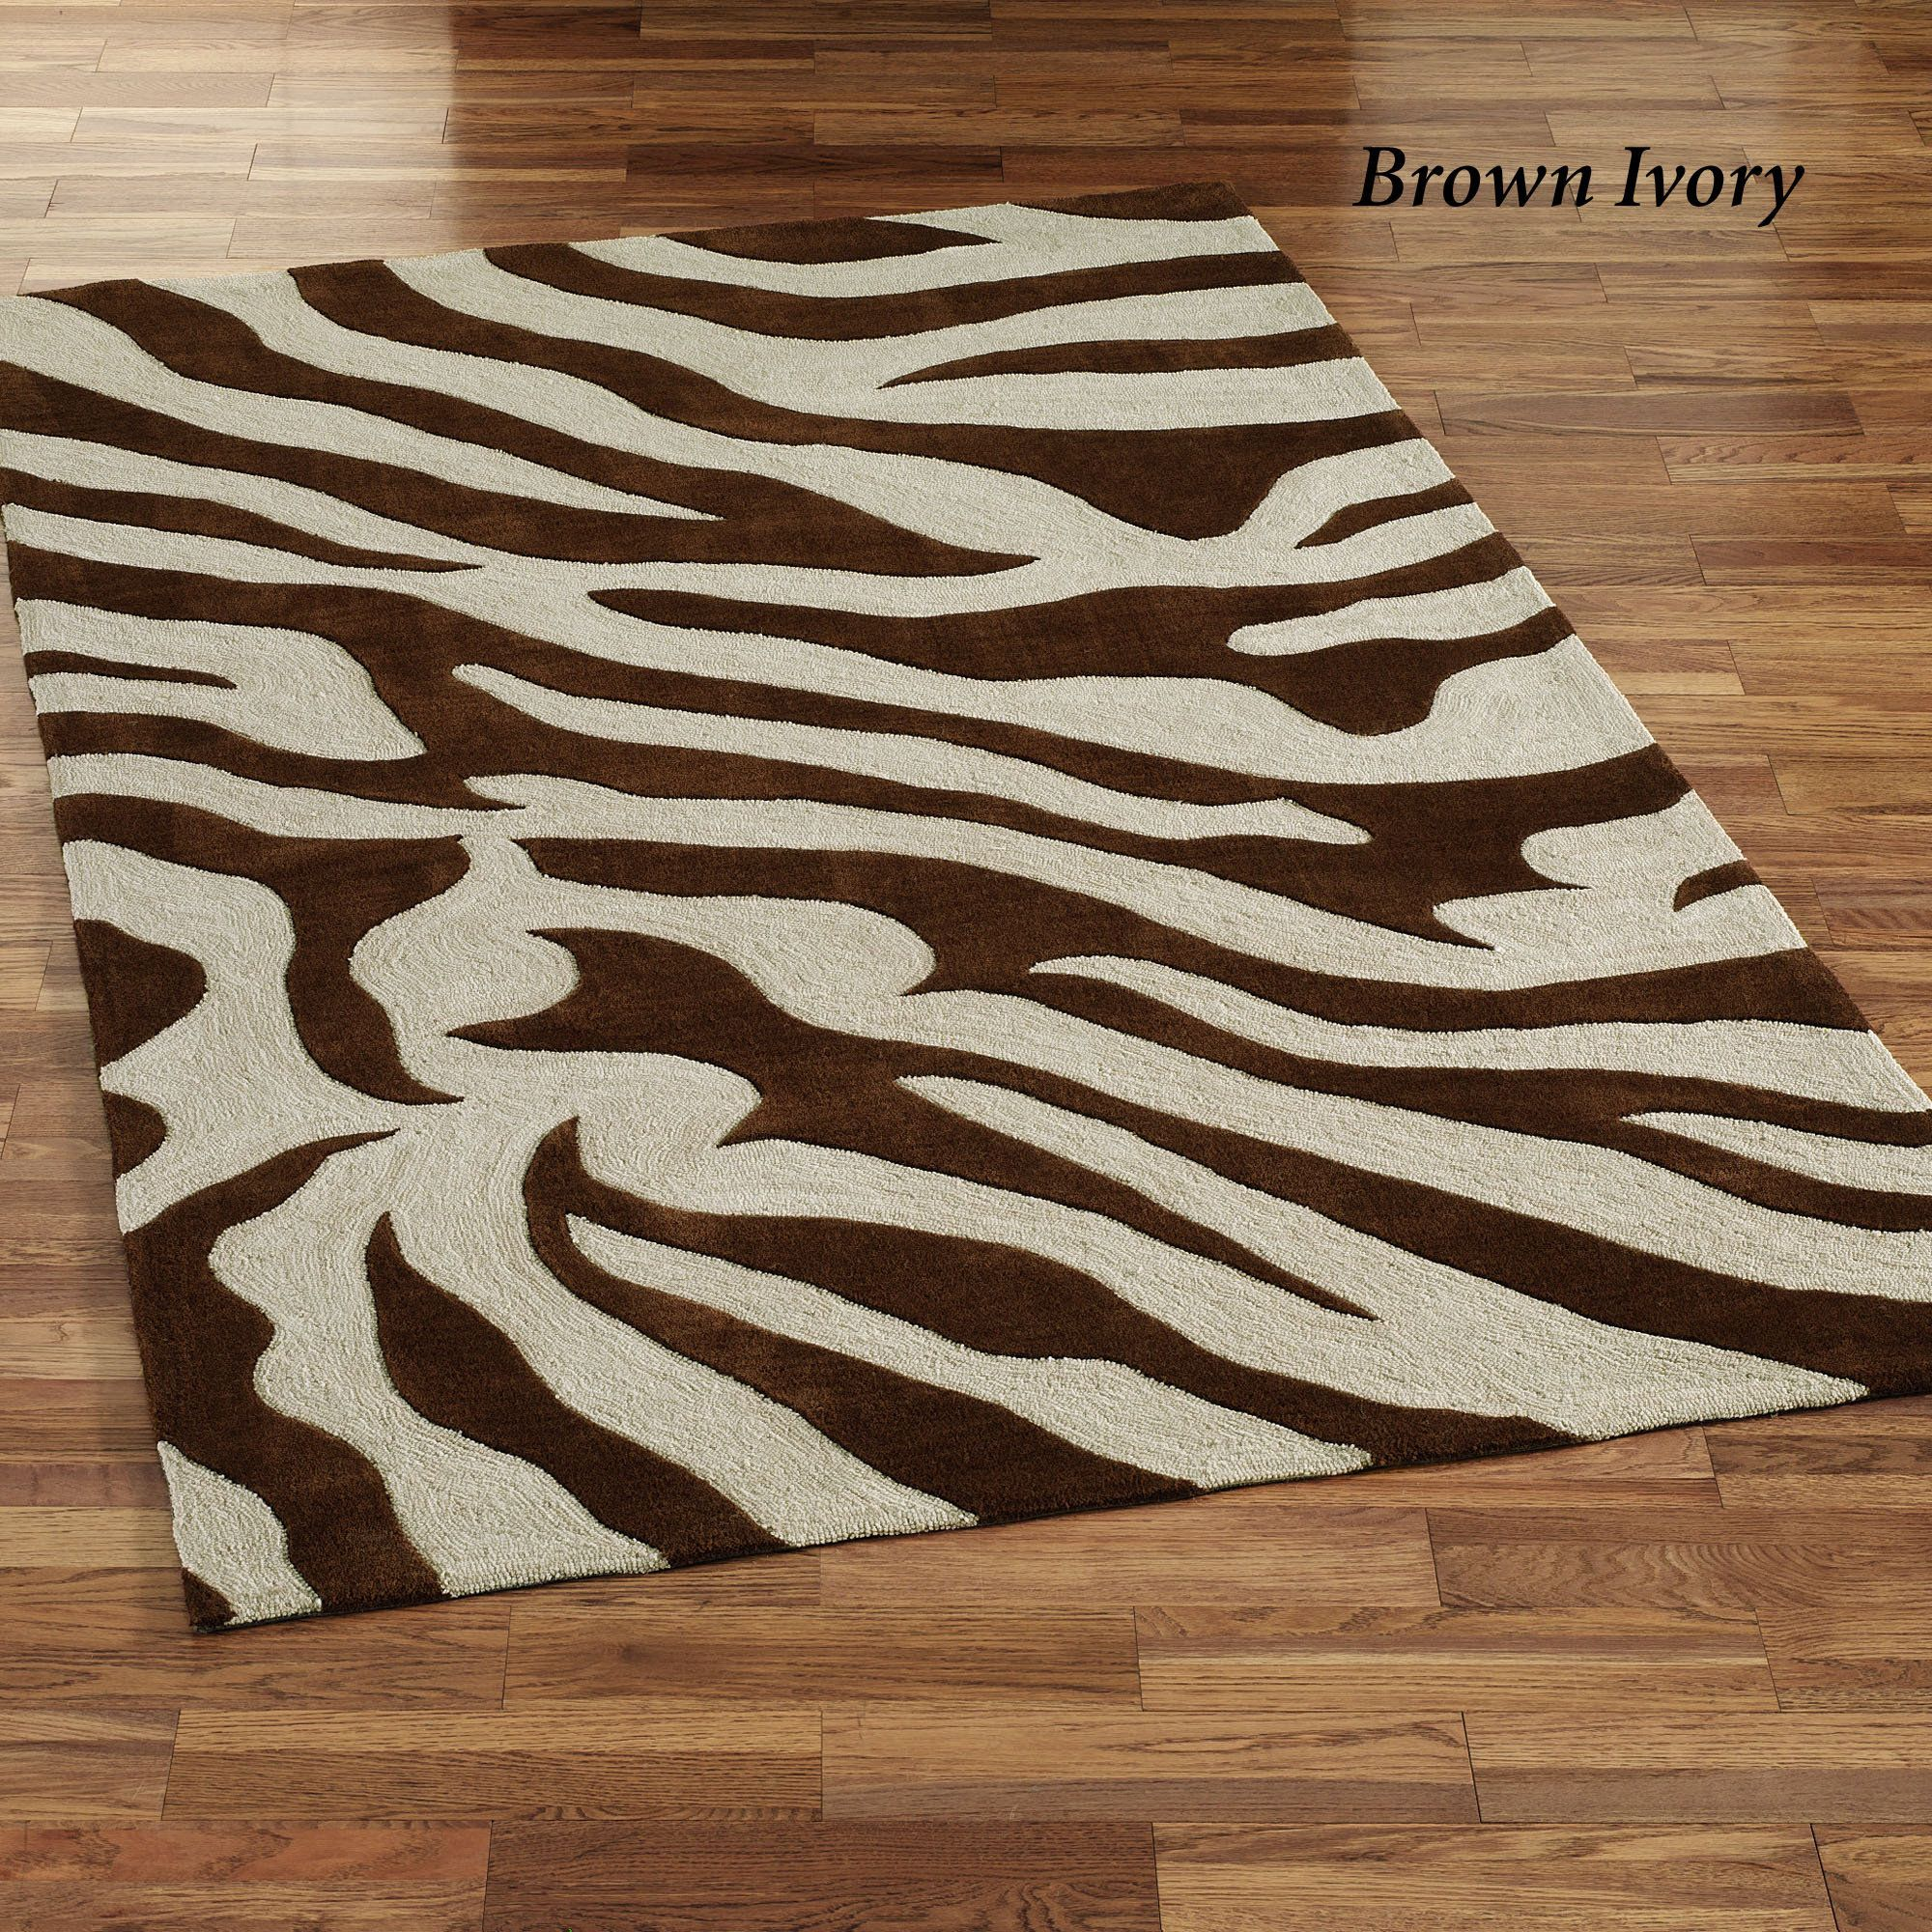 Most Popular Area Rugs Lowes Cool Design Ideas With Inspiring